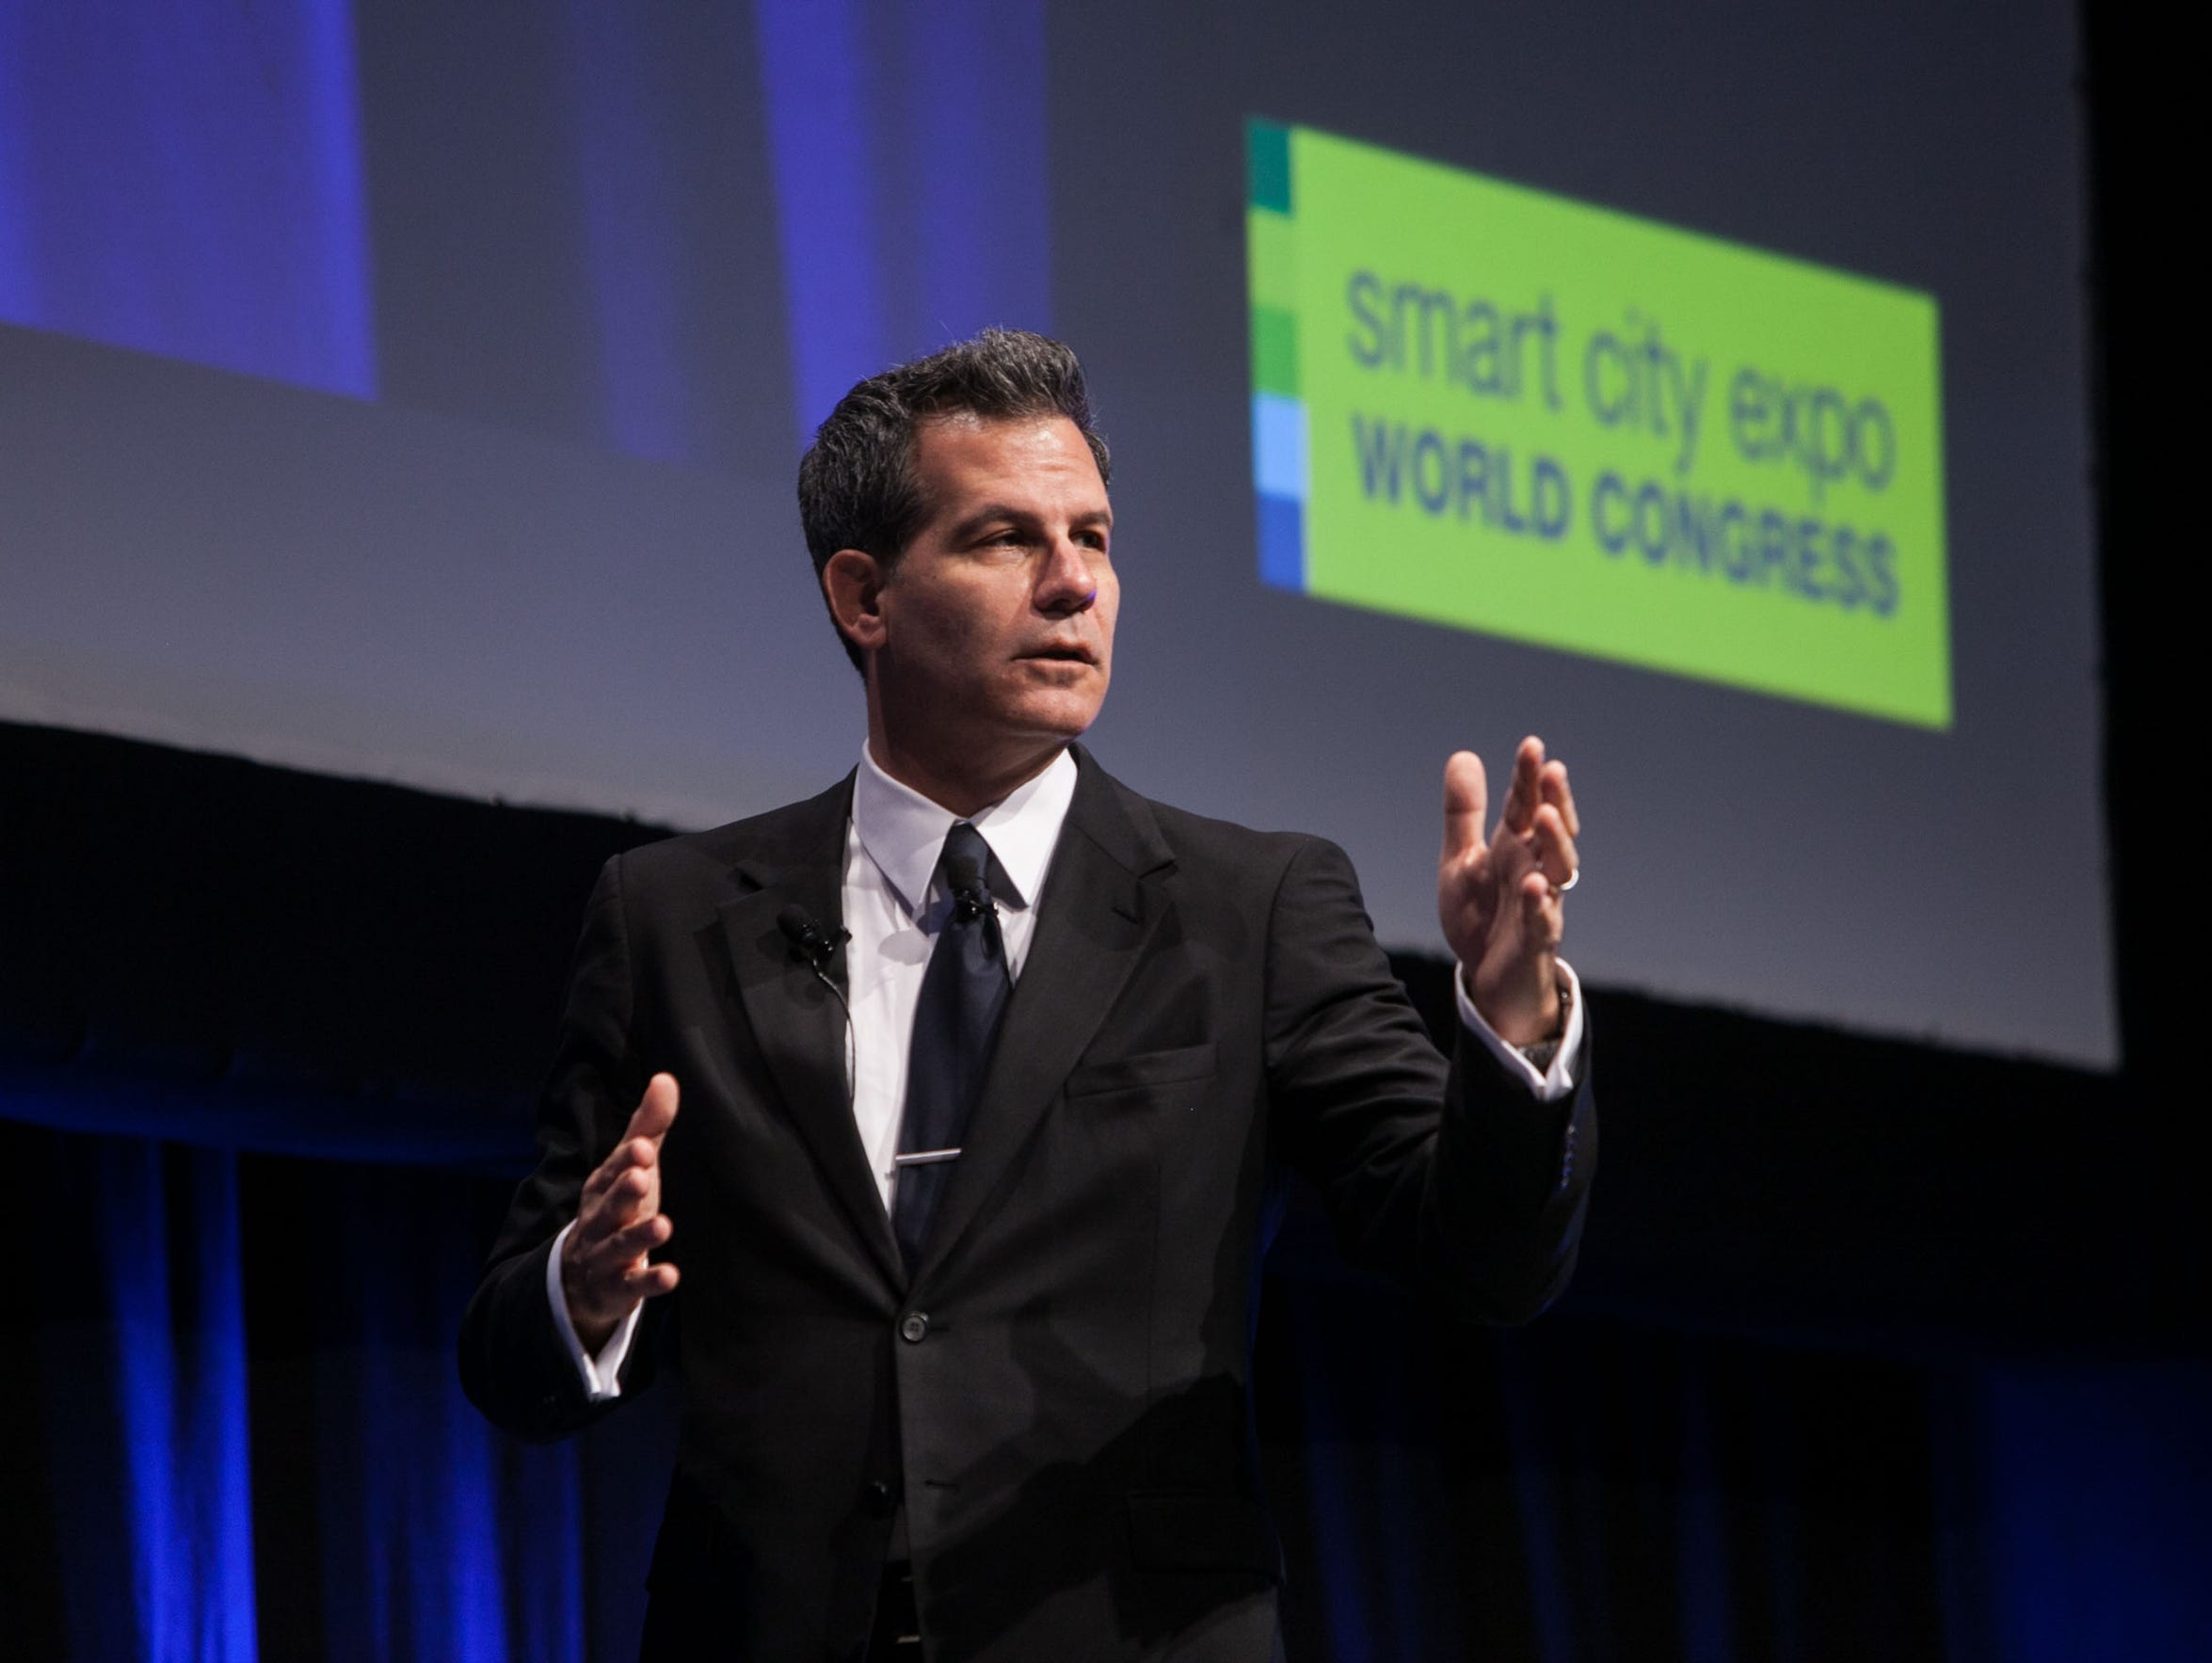 richard florida Richard l florida (born november 26, 1957, in newark, new jersey) is an american urban studies theorist focusing on social and economic theory he is currently a professor and head of the martin prosperity institute at the rotman school of management at the university of toronto.